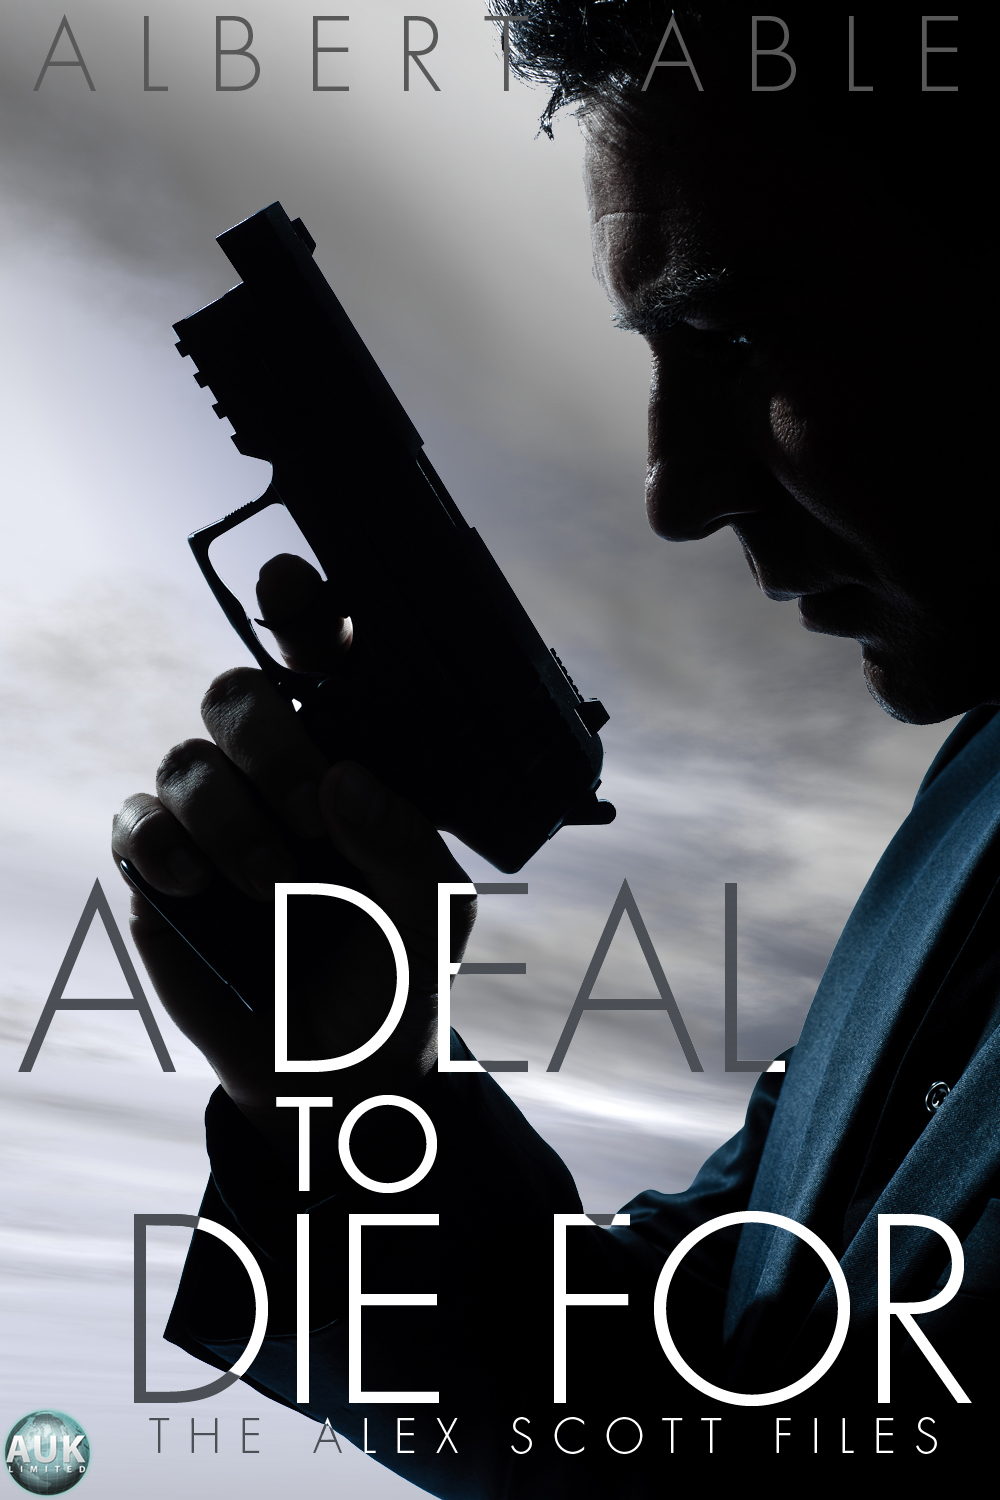 A Deal to Die For By: Albert Able